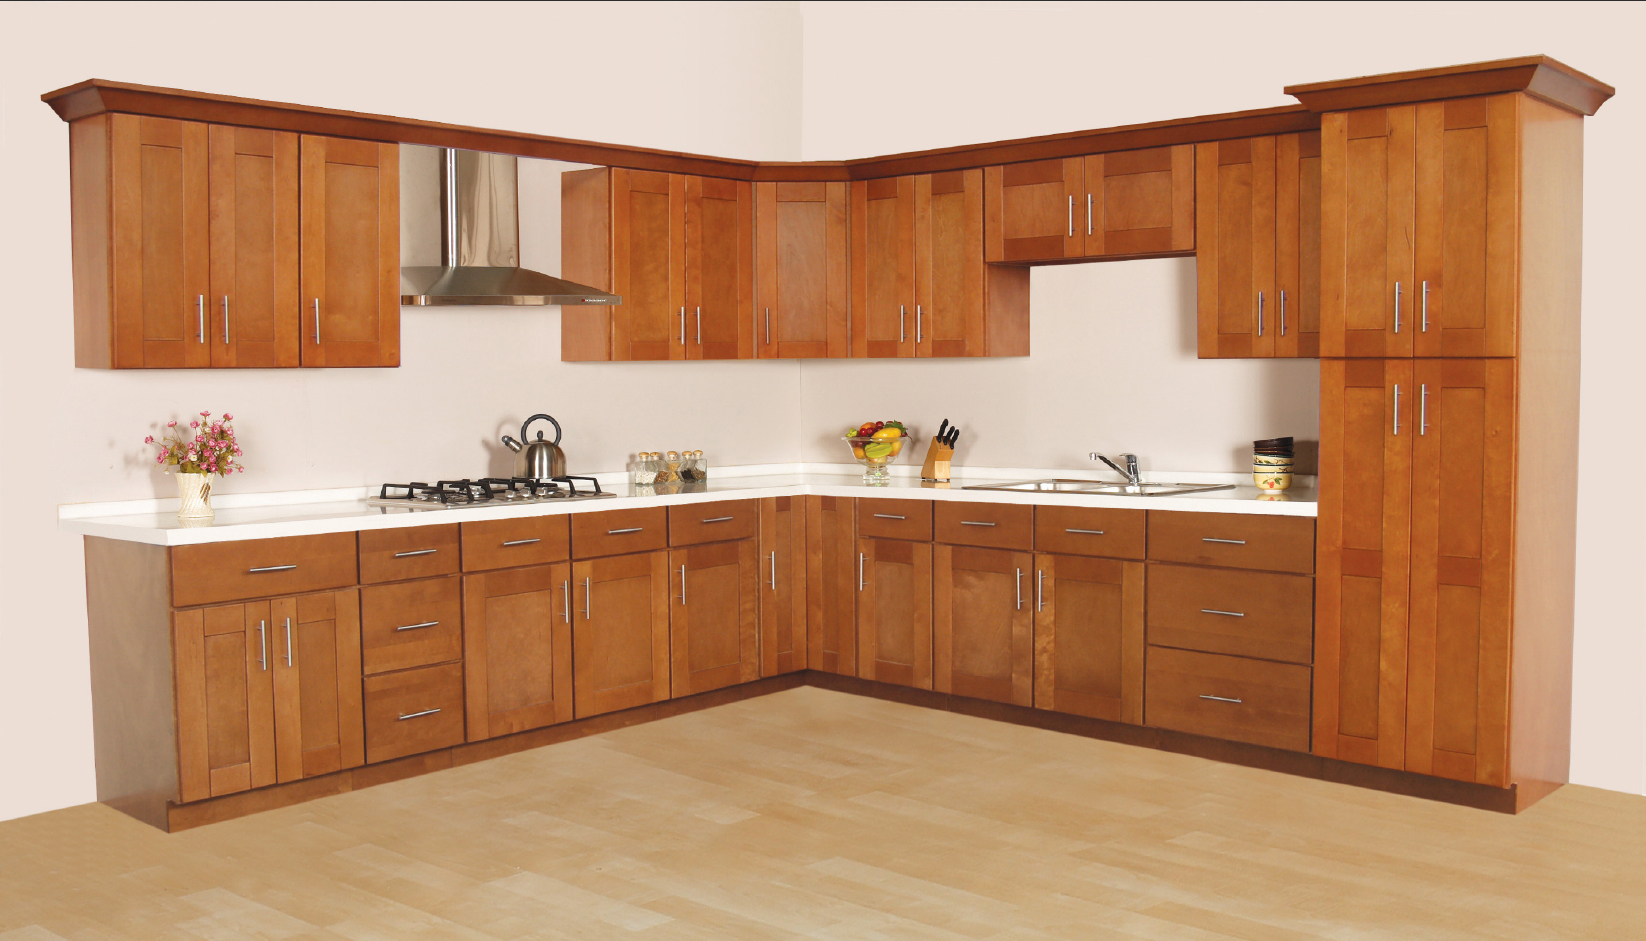 Menards kitchen cabinet price and details home and for Kitchen ideas long kitchen